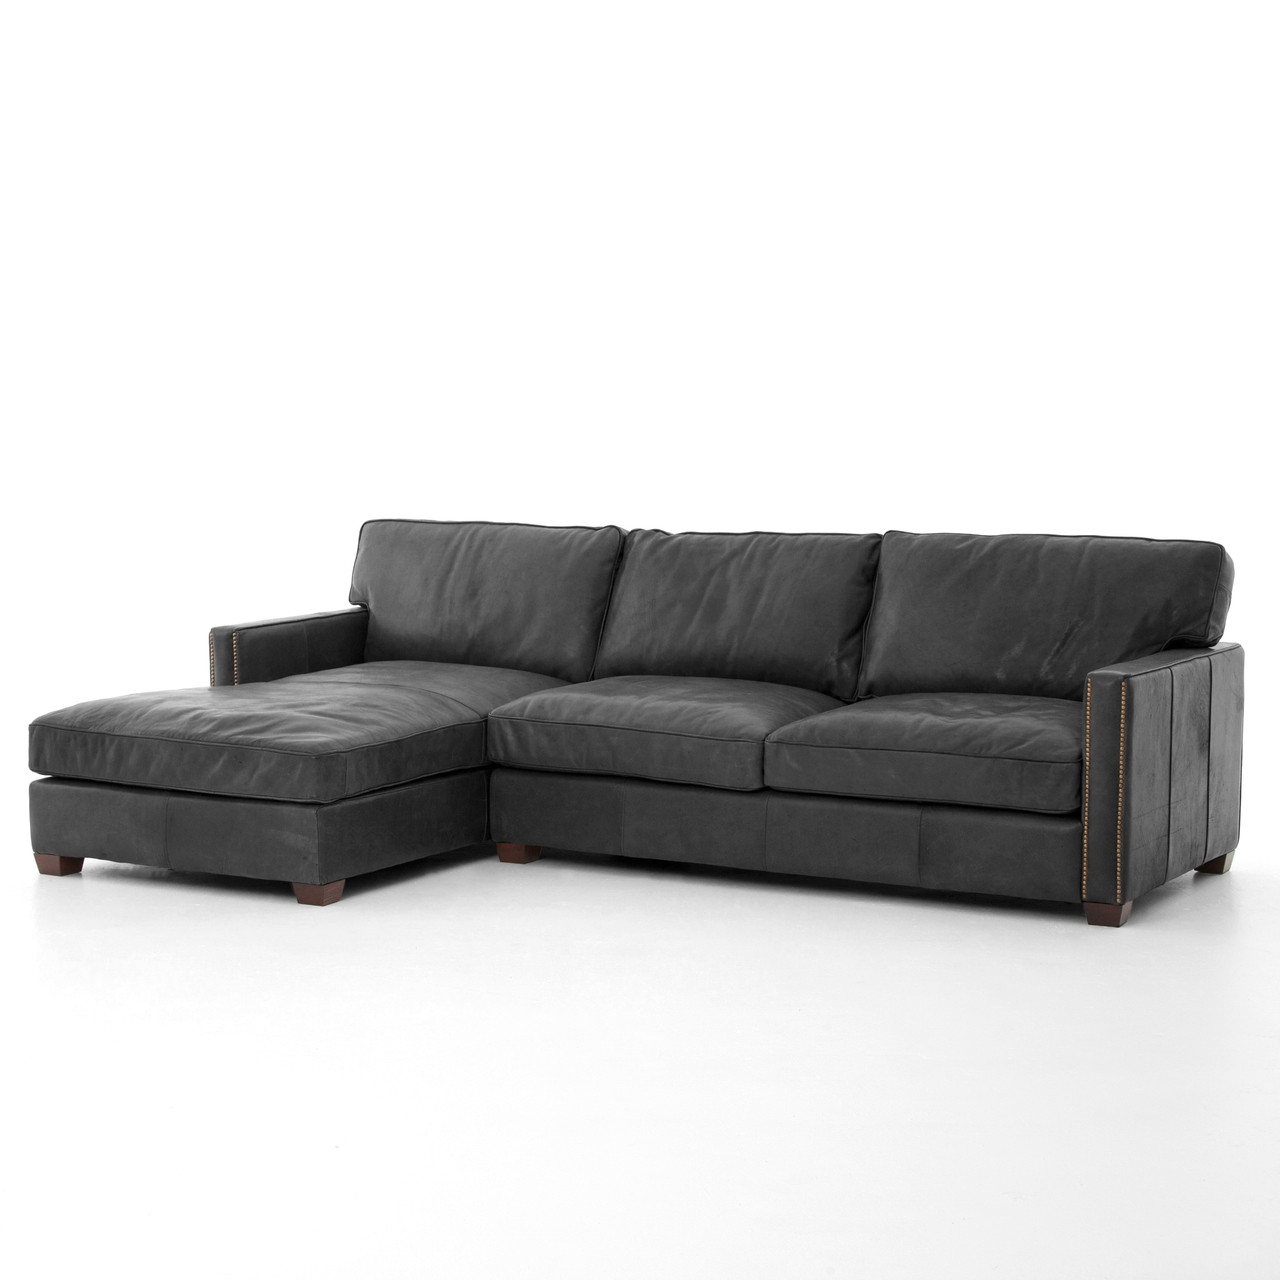 leather best tufted delightful persoperperso is the chaise with of sectional black sofa has one other furniture kind fancy